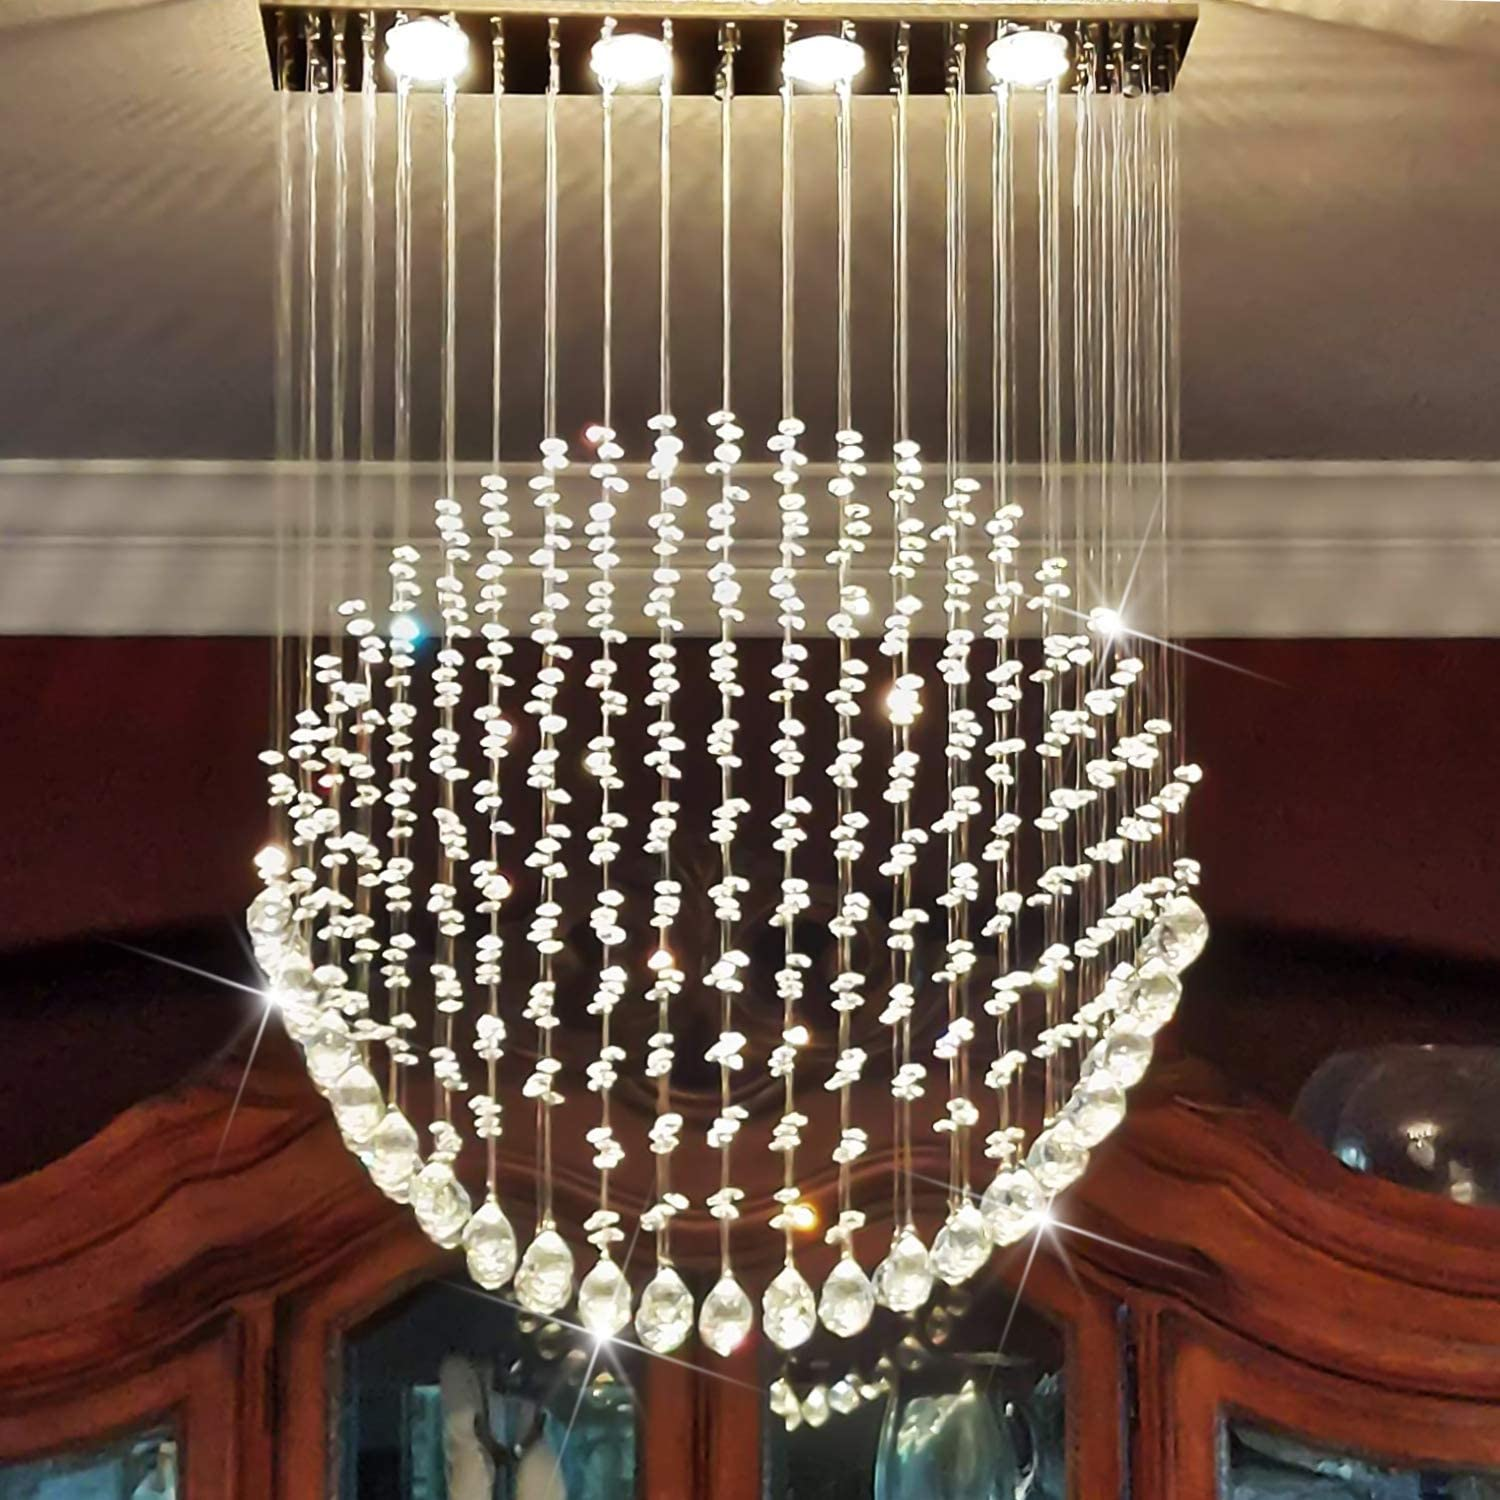 CRYSTOP Modern Rain Drop Romantic Crystal Contemporary Chandelier Lighting Wedding Cafe Flush Mount Indoor Ceiling Light Fixture L23.6 X W6 X H27.5 Inches